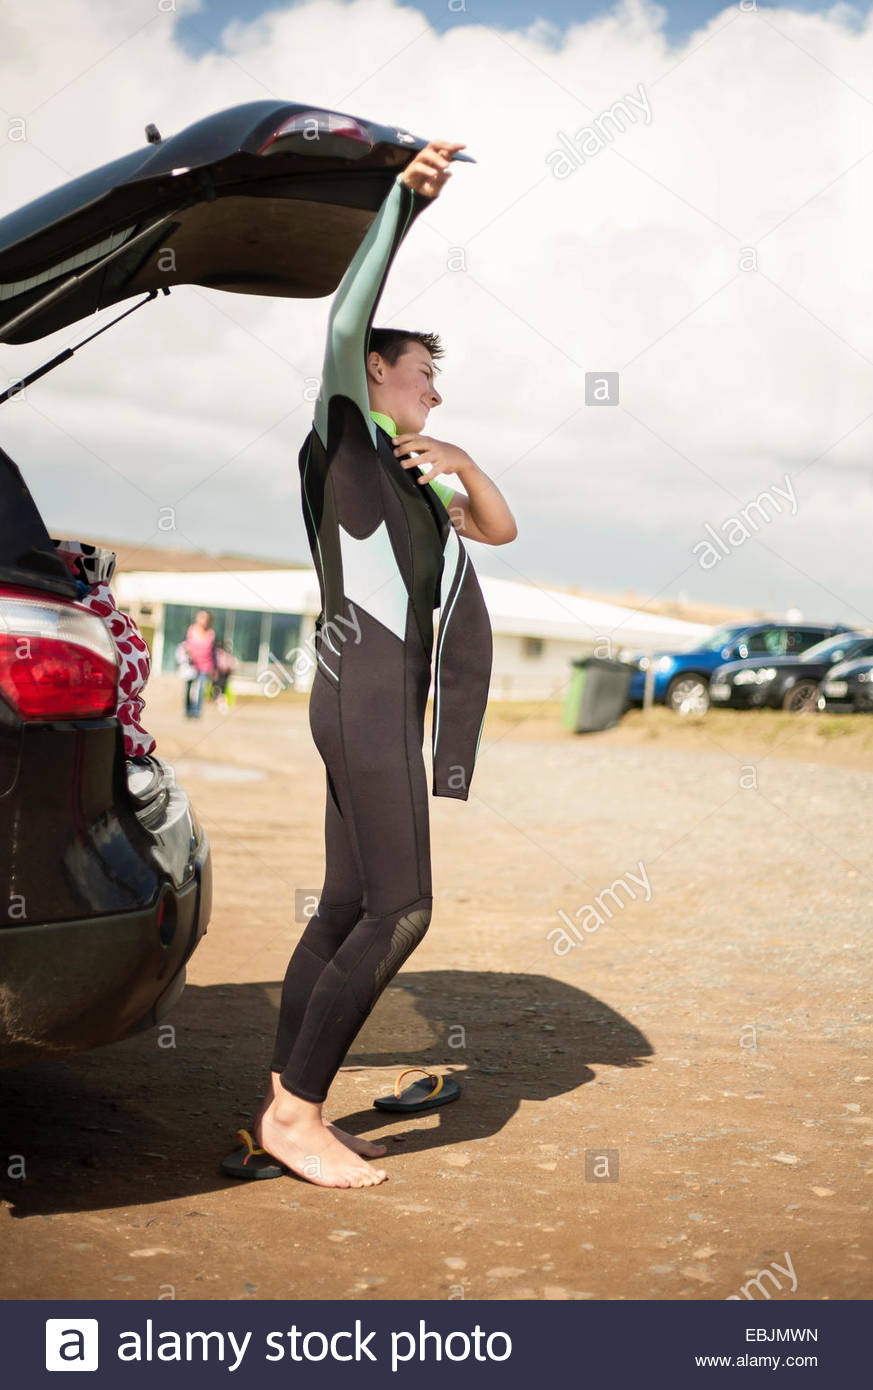 Boy putting on wetsuit by car - Stock Image